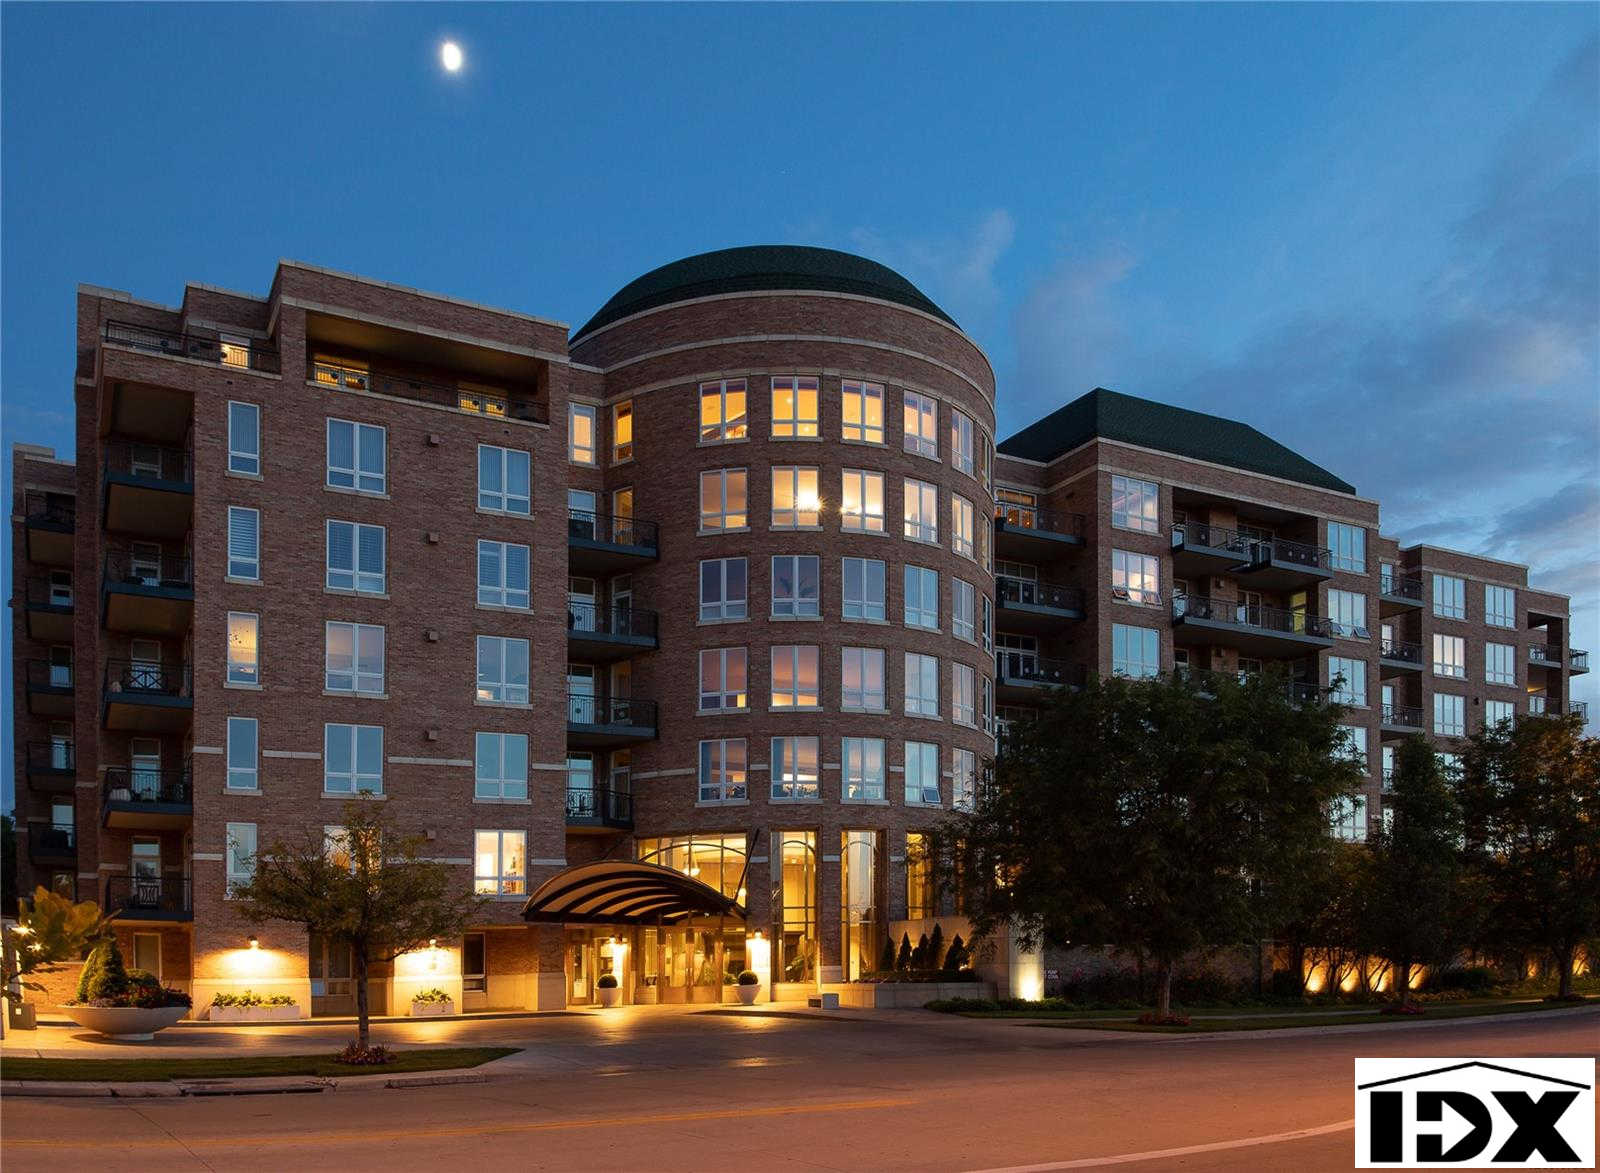 2400 East Cherry Creek South Drive #701, Denver, CO 80209 now has a new price of $4,000,000!